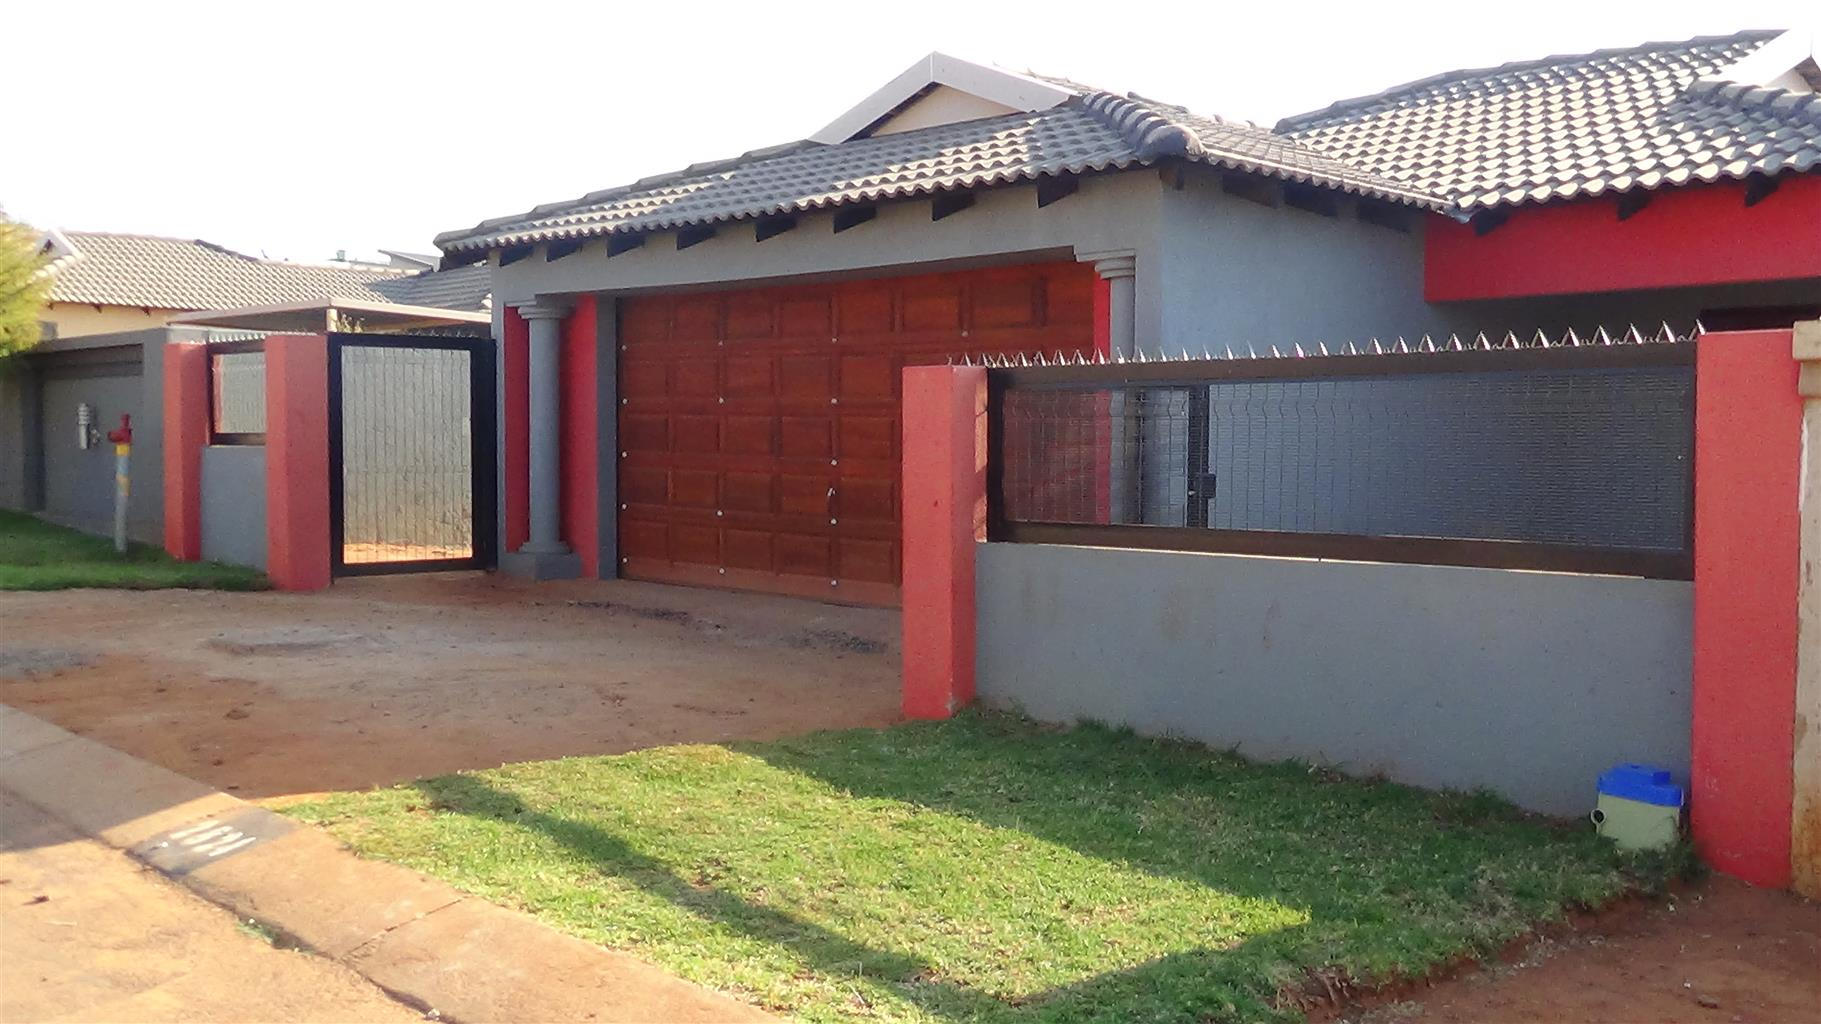 3 Bedroom House in Amandasig – R 1 250 000